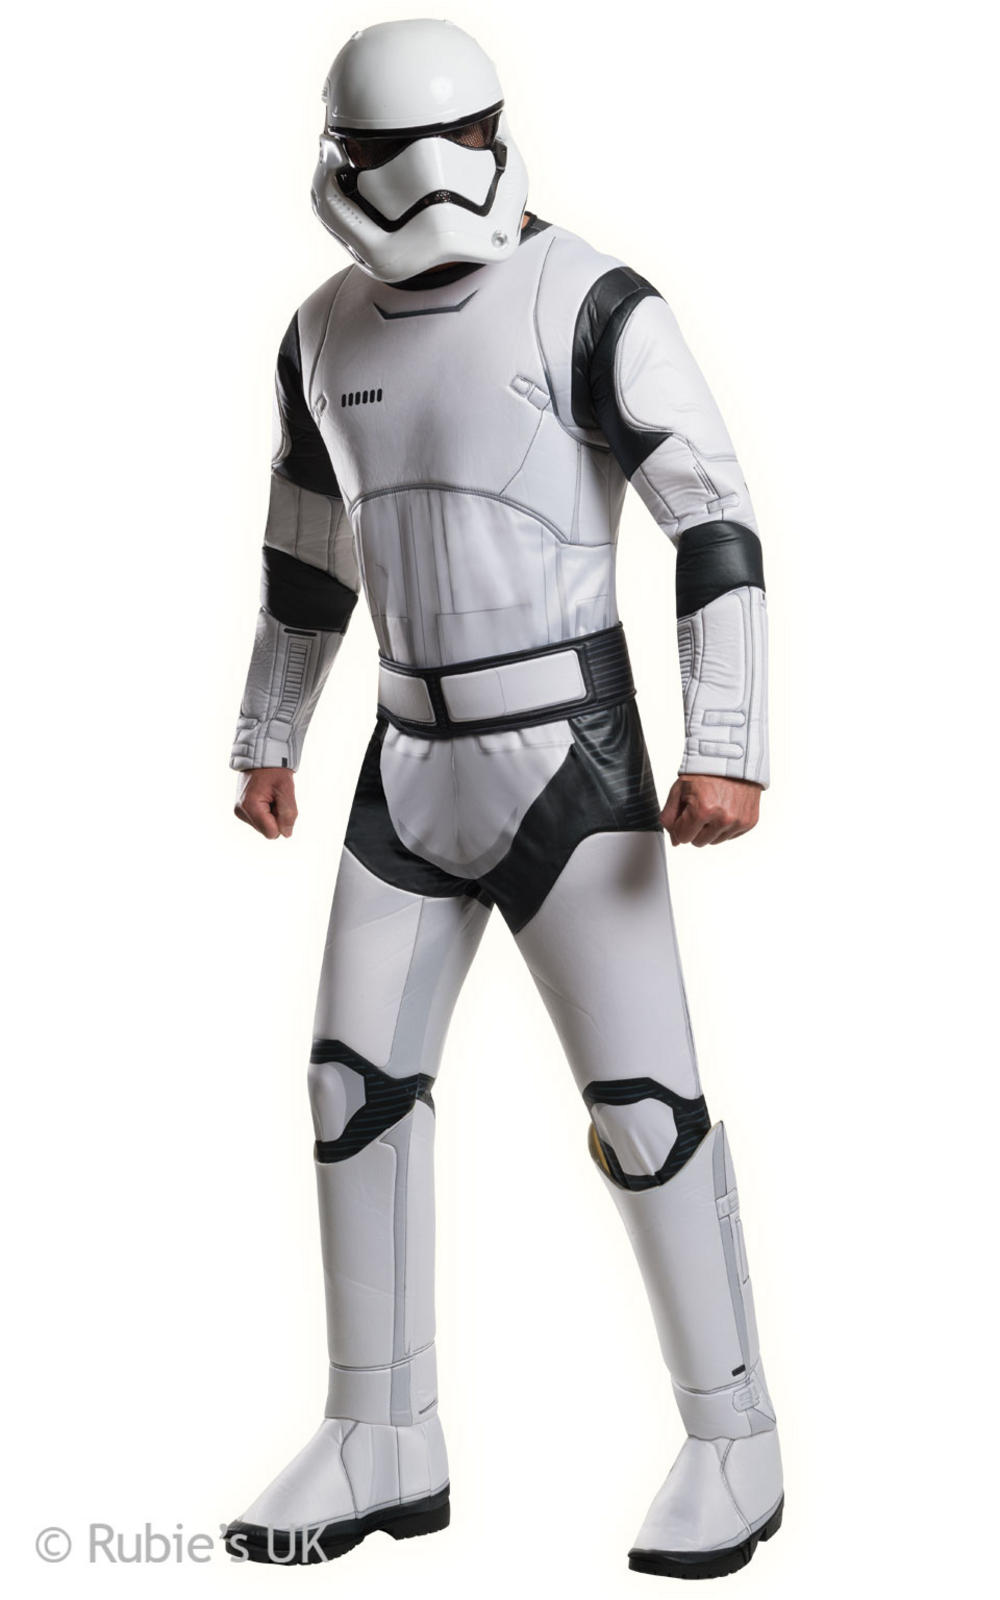 Deluxe Stormtrooper The Force Awakens Star Wars Costume